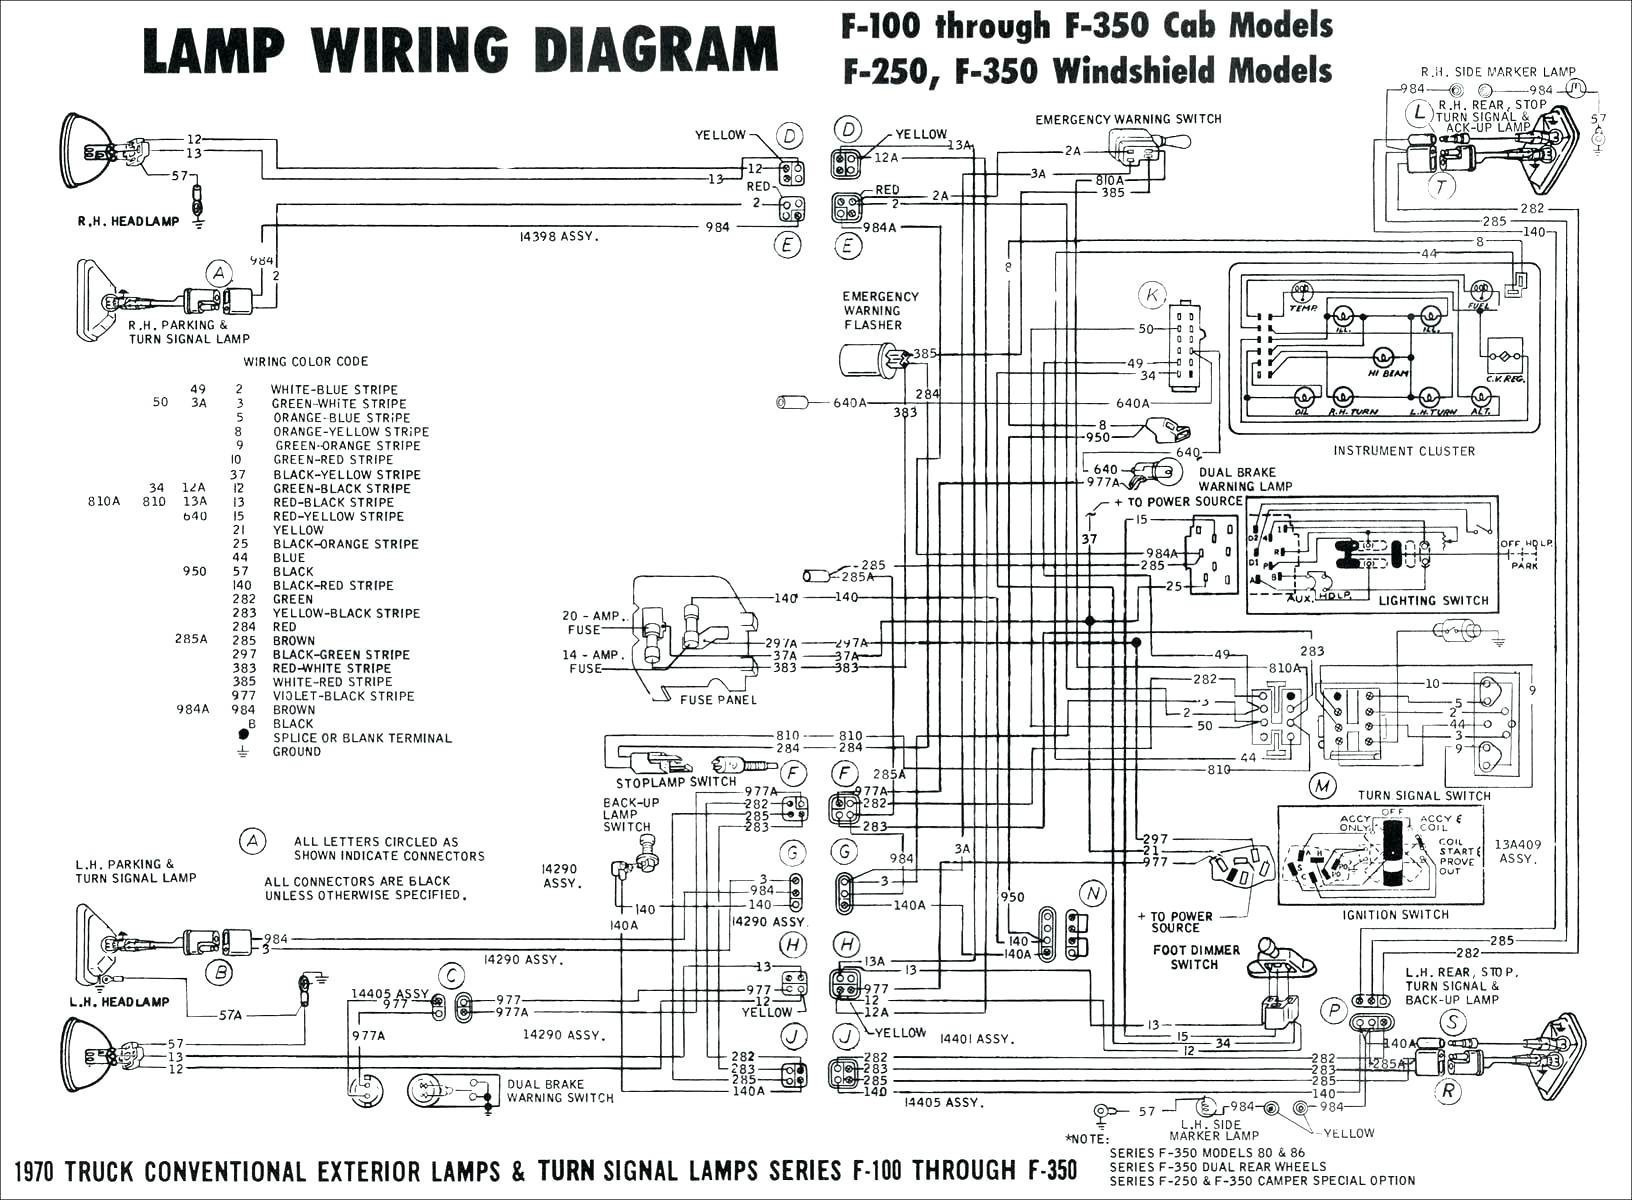 Broan 7004 Wiring Diagram | Wiring Diagram - Viking Trailer Wiring Diagram